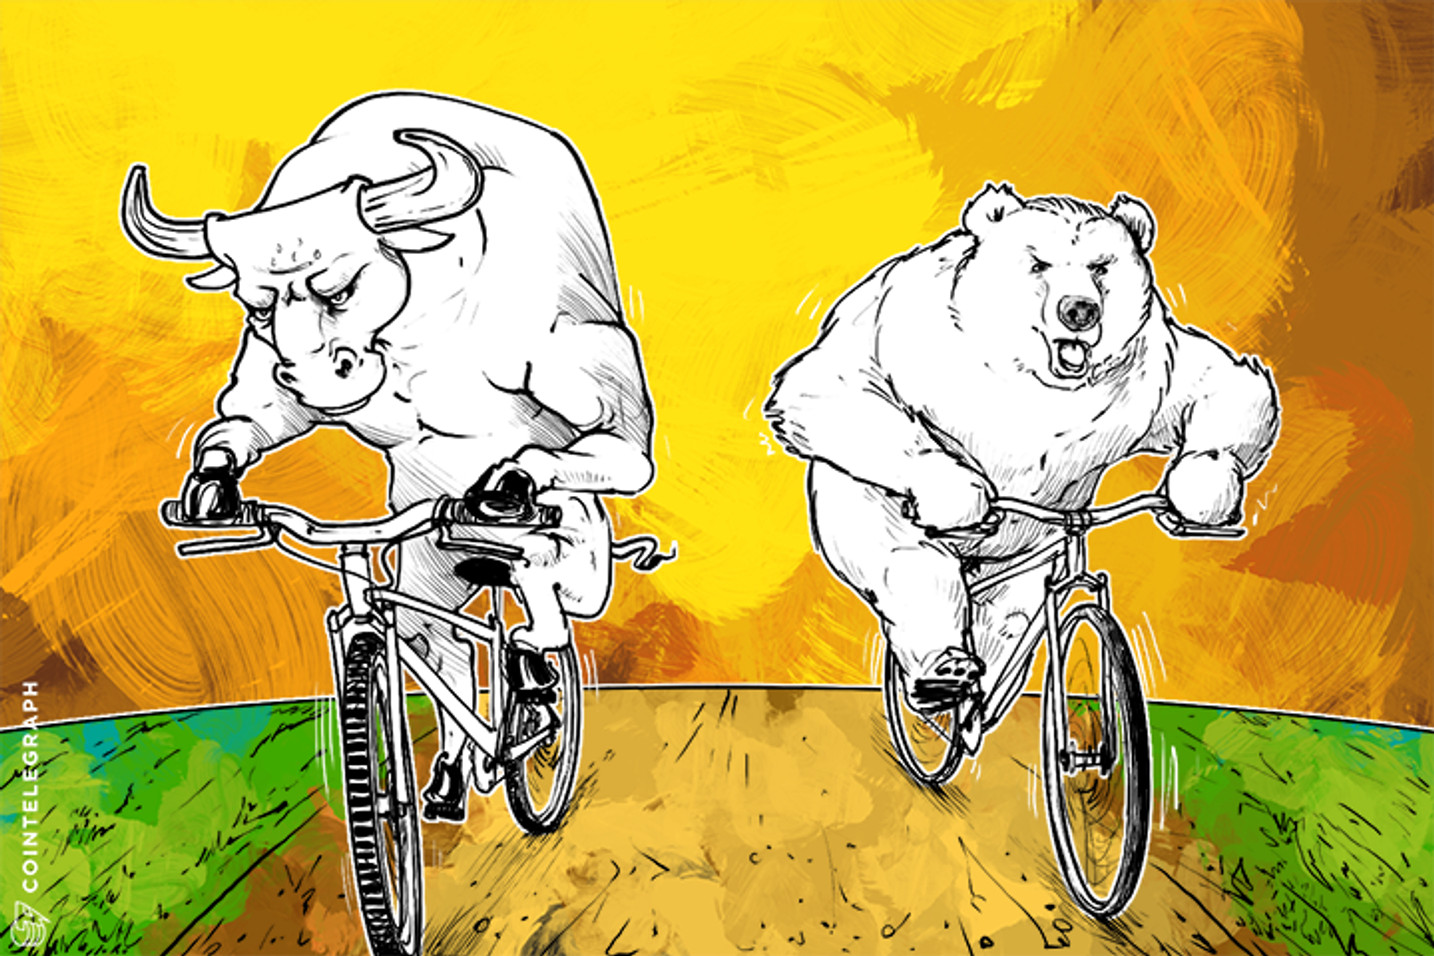 Bitcoin Price Analysis: Topping out around the 50-day EMA